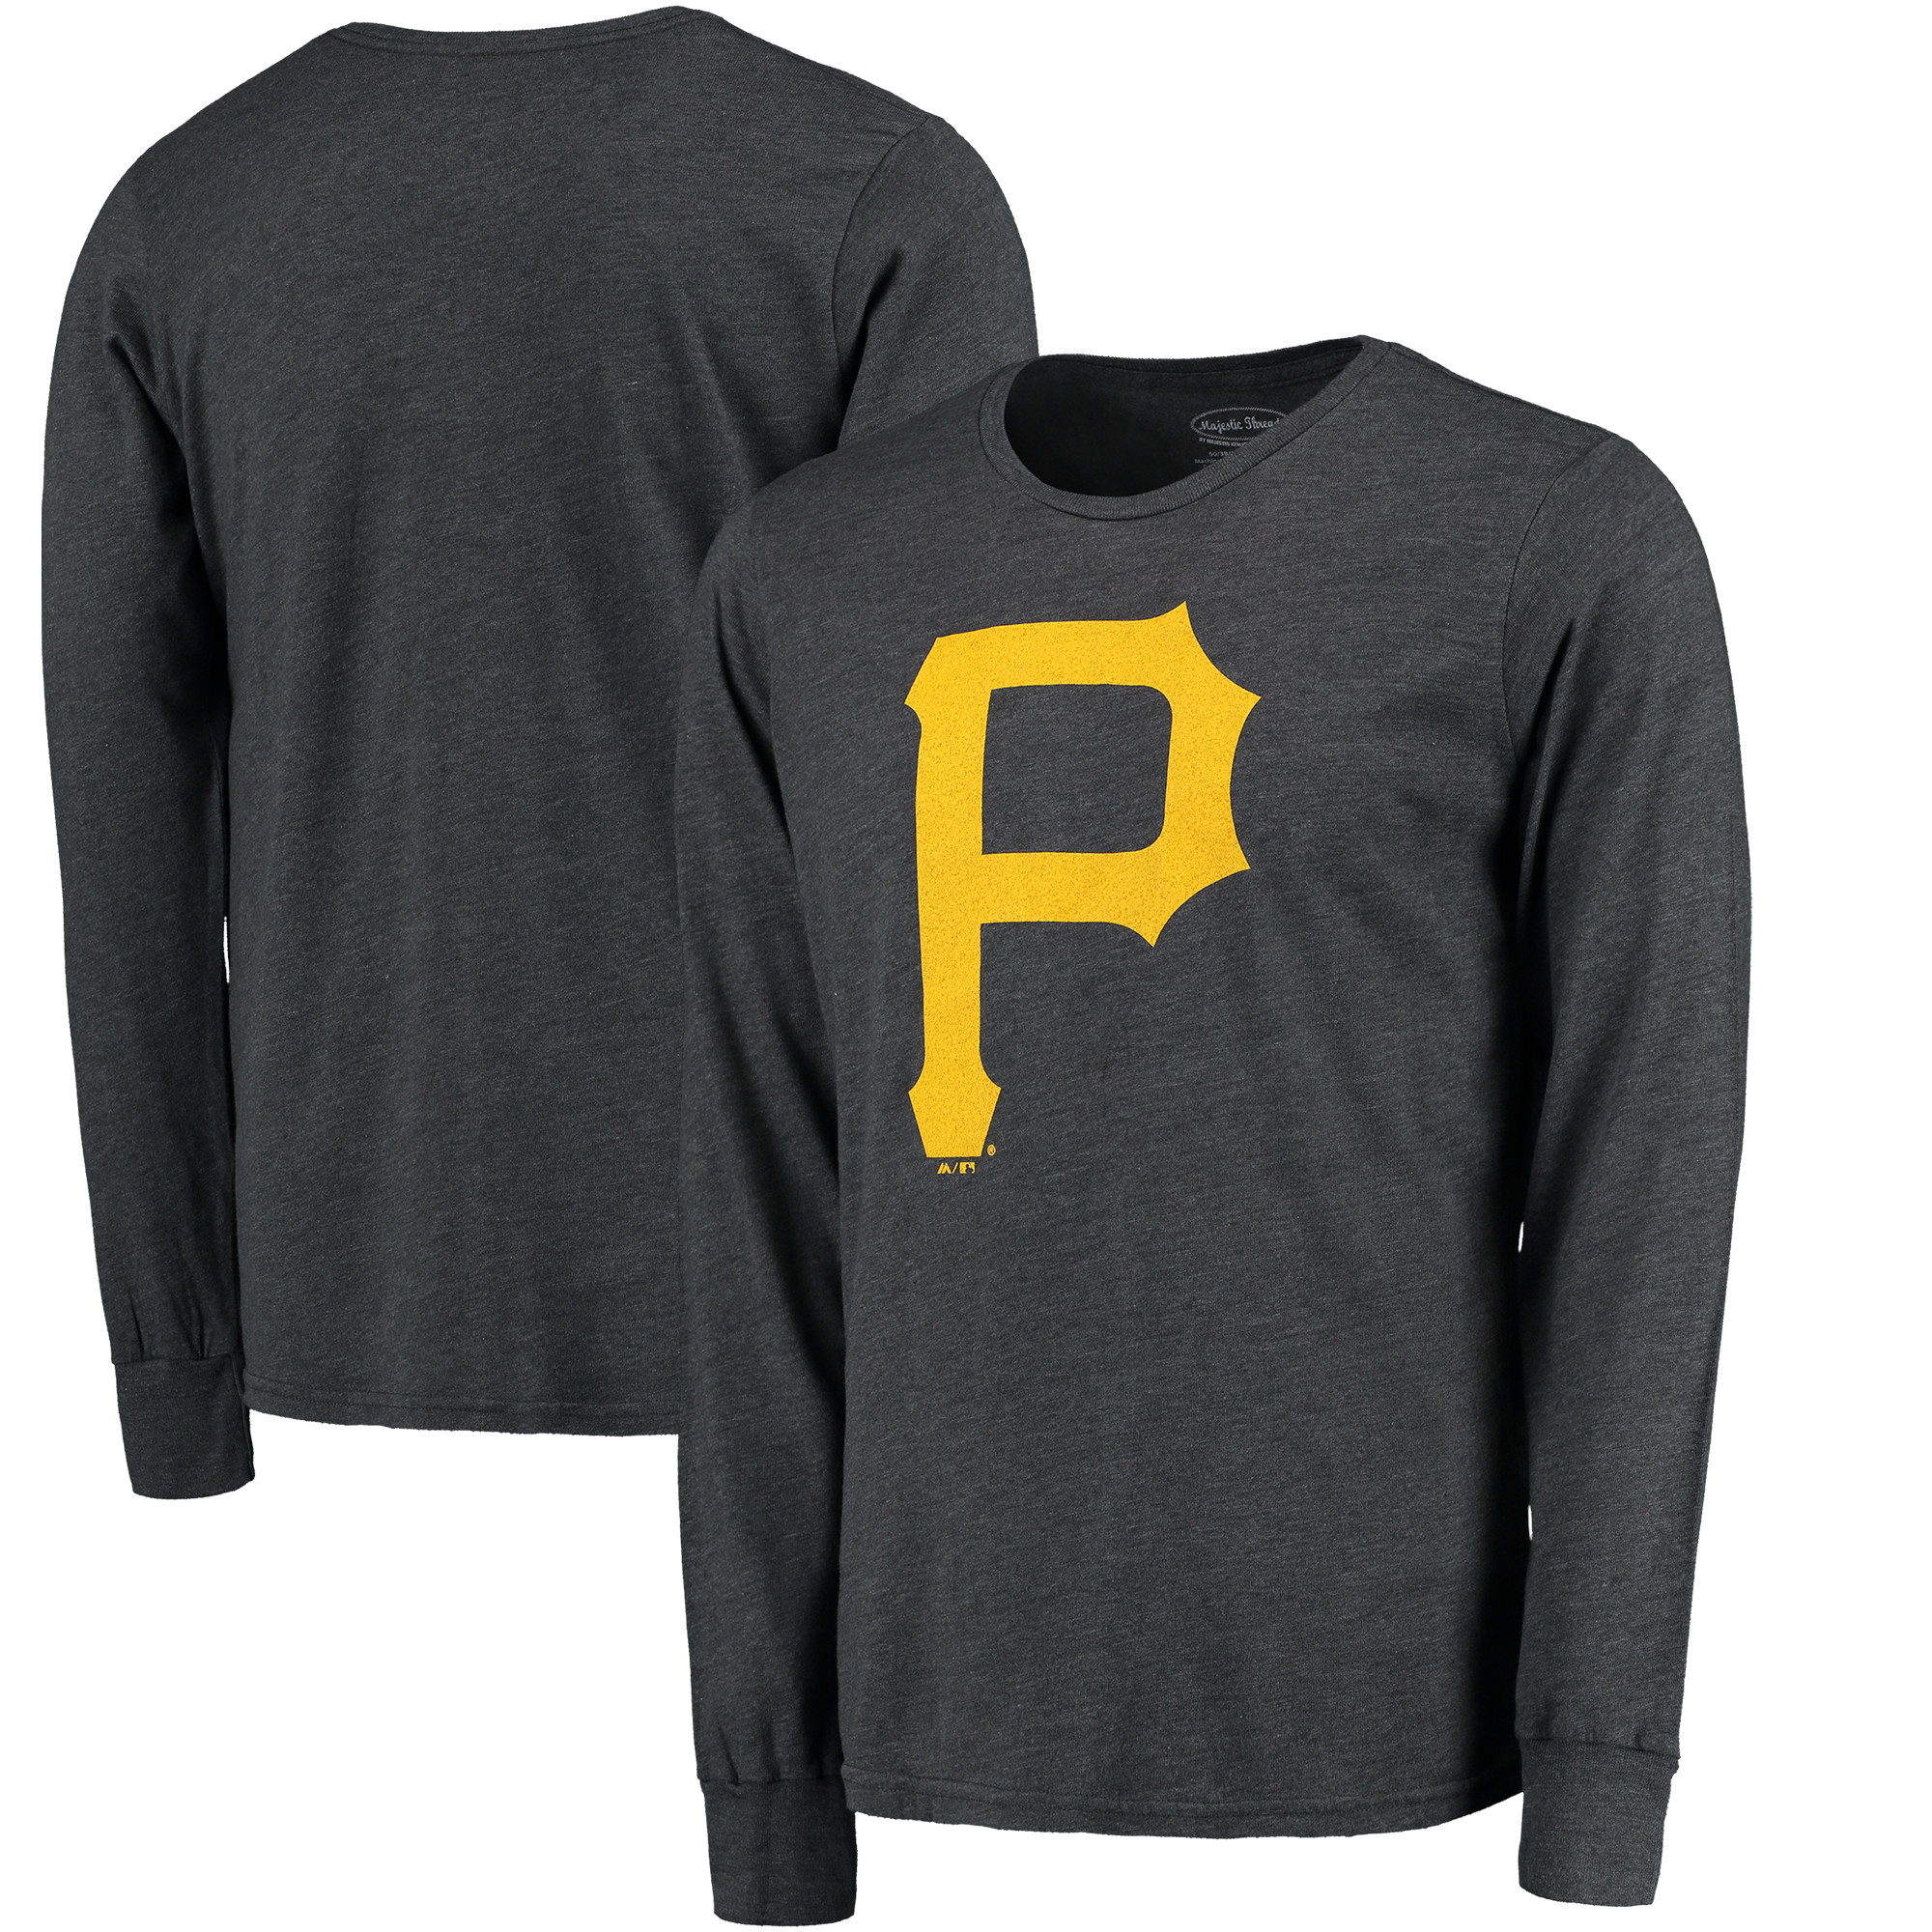 Pittsburgh Pirates Majestic Threads Tri-Blend Long Sleeve T-Shirt - Graphite